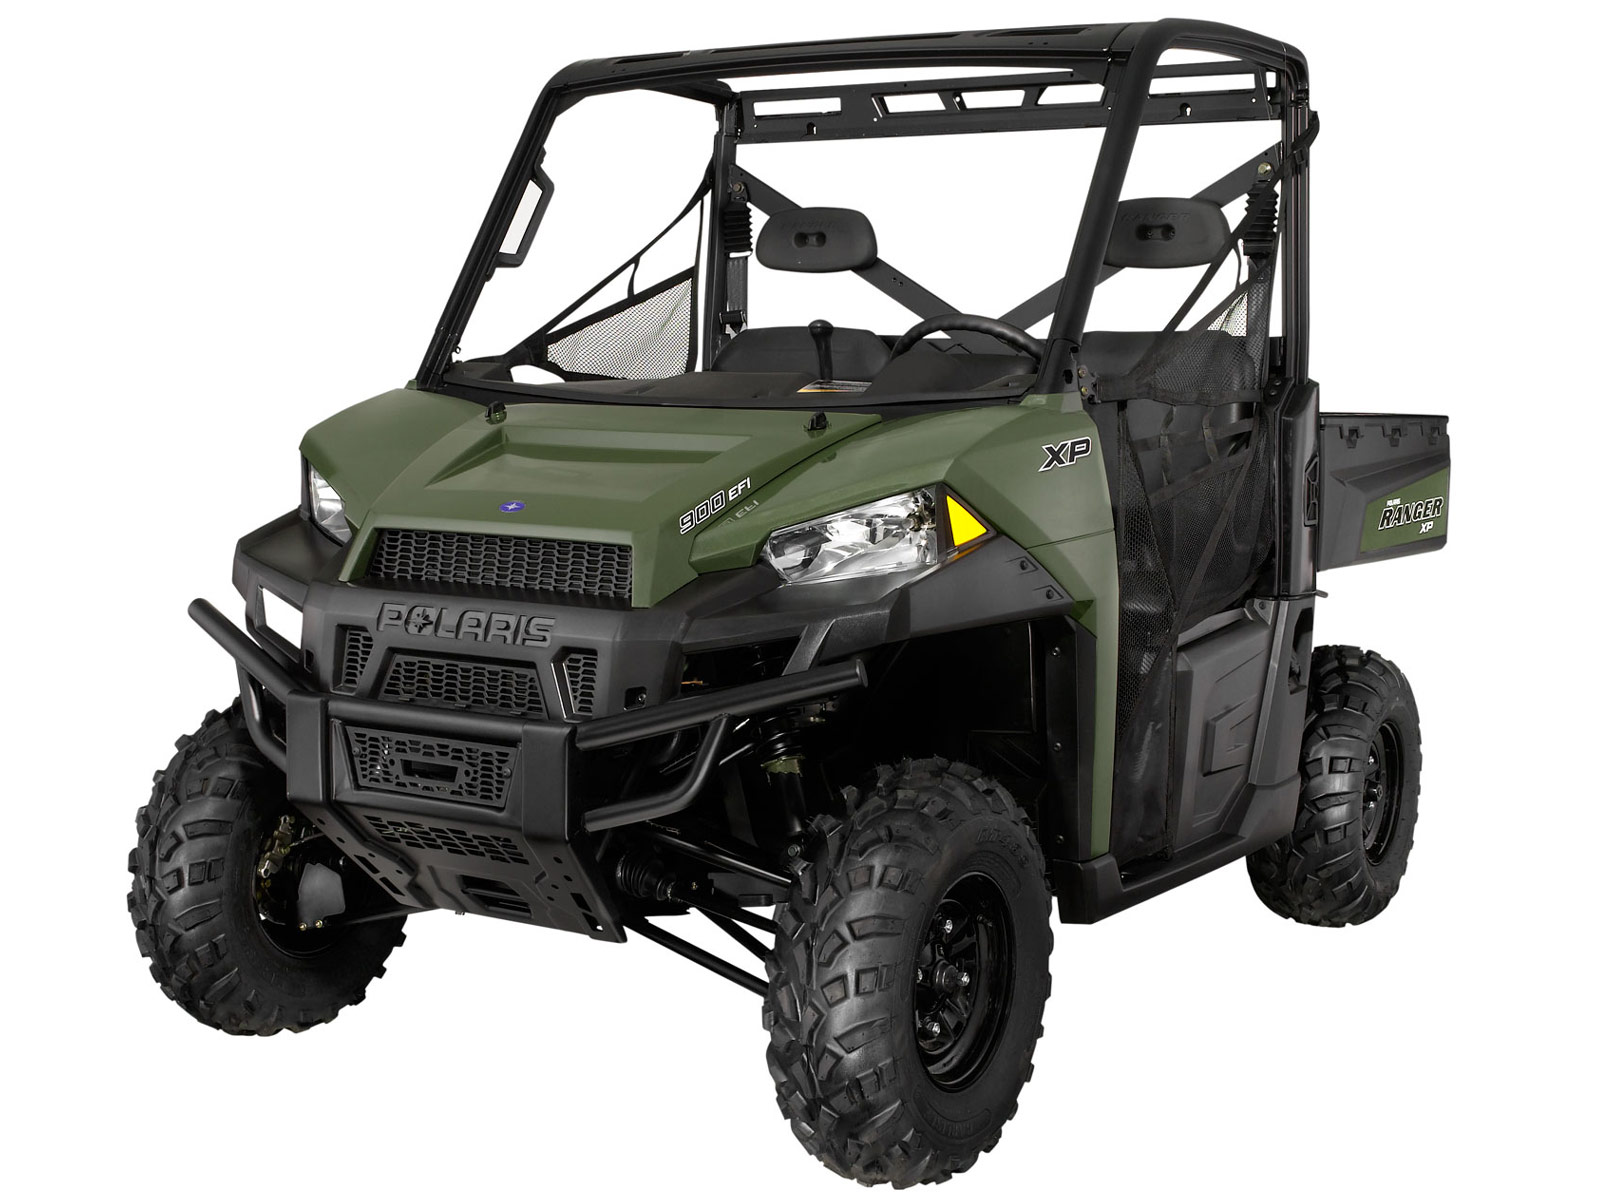 2013 polaris ranger xp900 atv pictures 3 [ 1600 x 1200 Pixel ]